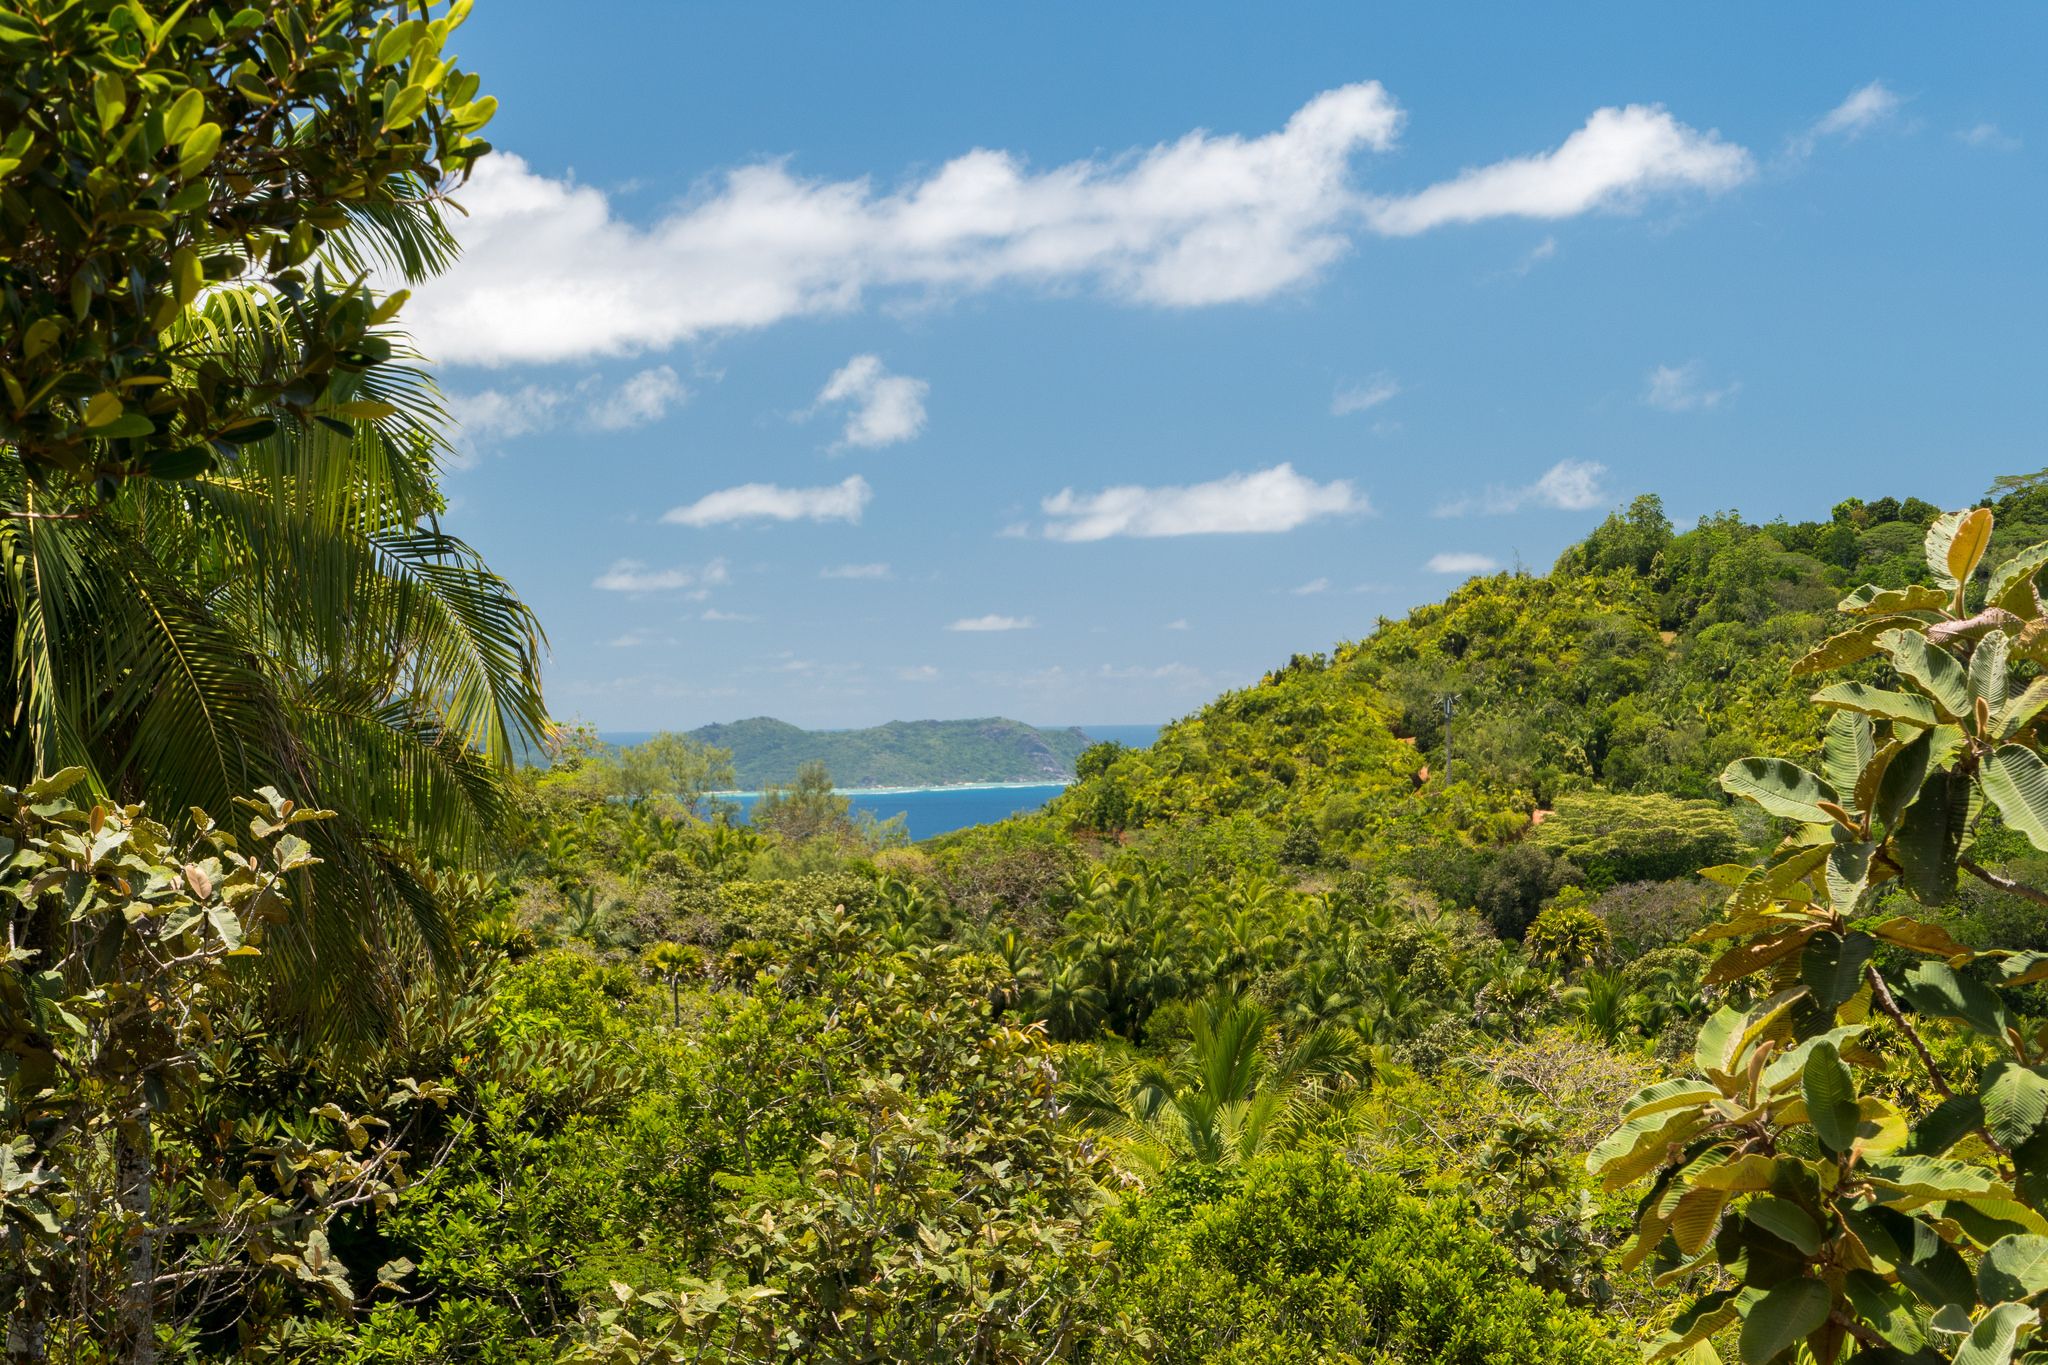 The lookout at the Vallee De Mai  ©So Seychelles/flickr